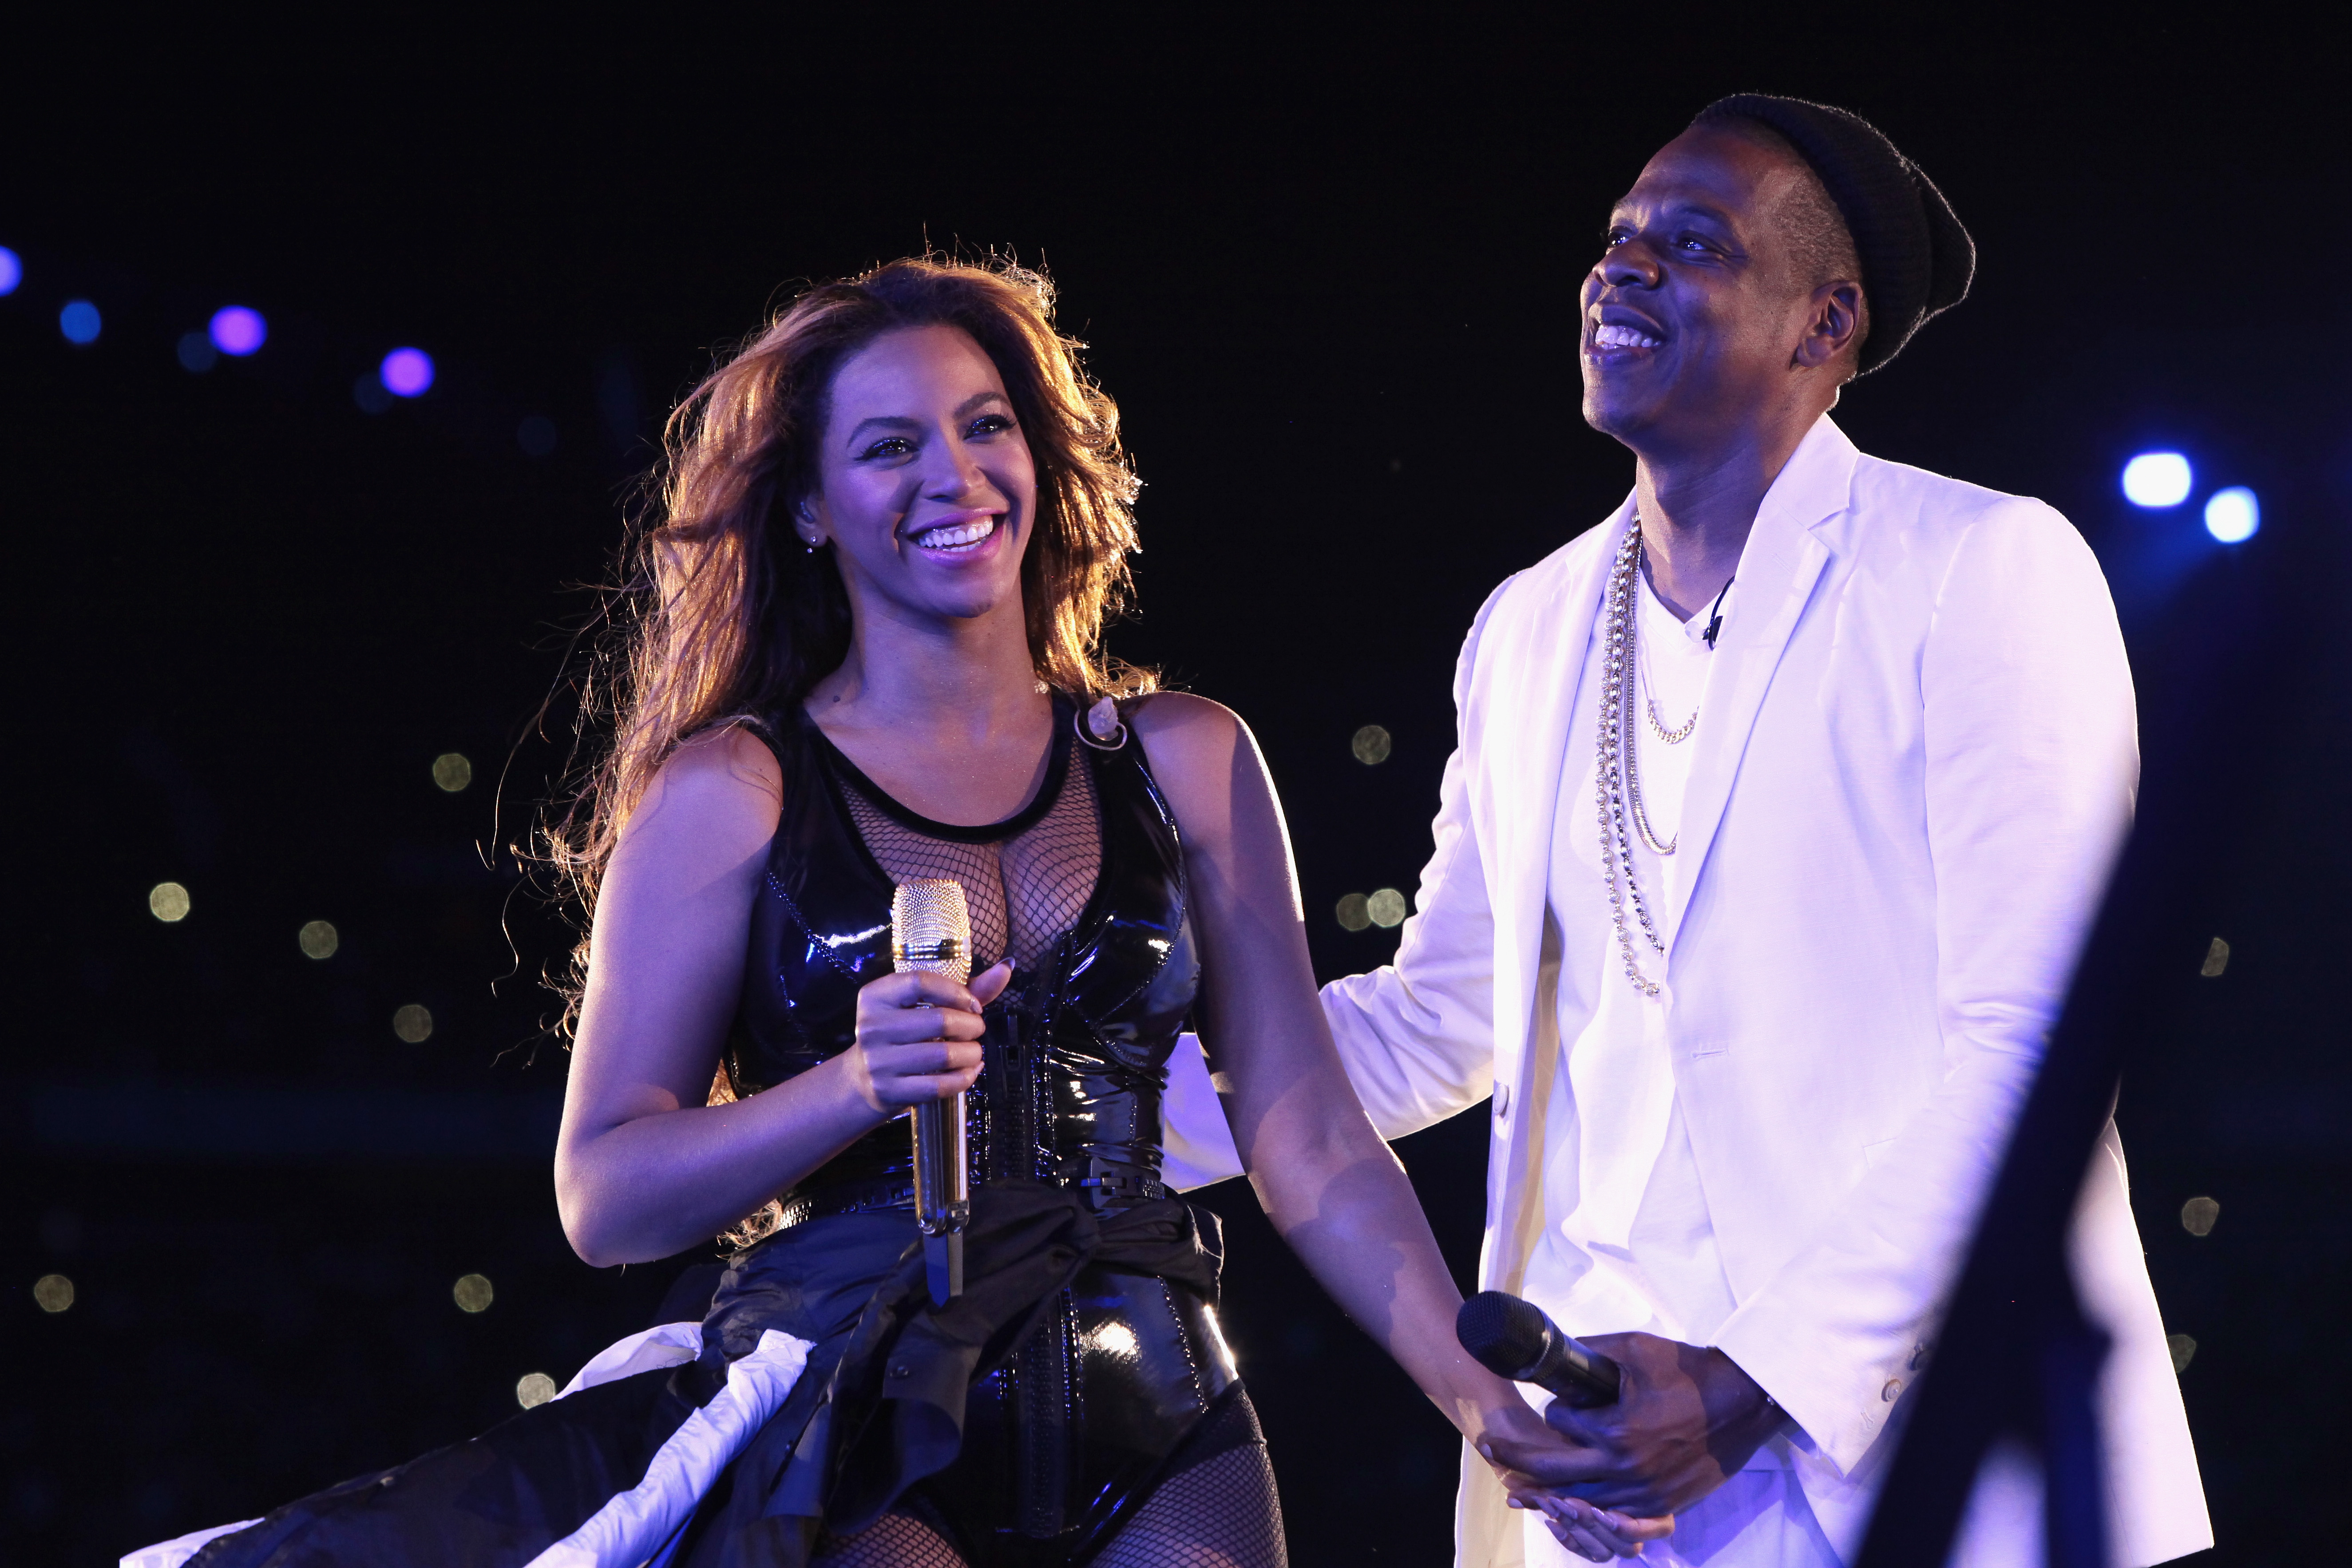 """PARIS, FRANCE - SEPTEMBER 12: Beyonce and Jay-Z perform during the """"On The Run Tour: Beyonce And Jay-Z"""" at the Stade de France on September 12, 2014 in Paris, France. (Photo by Myrna Suarez/WireImage for Parkwood Entertainment)"""